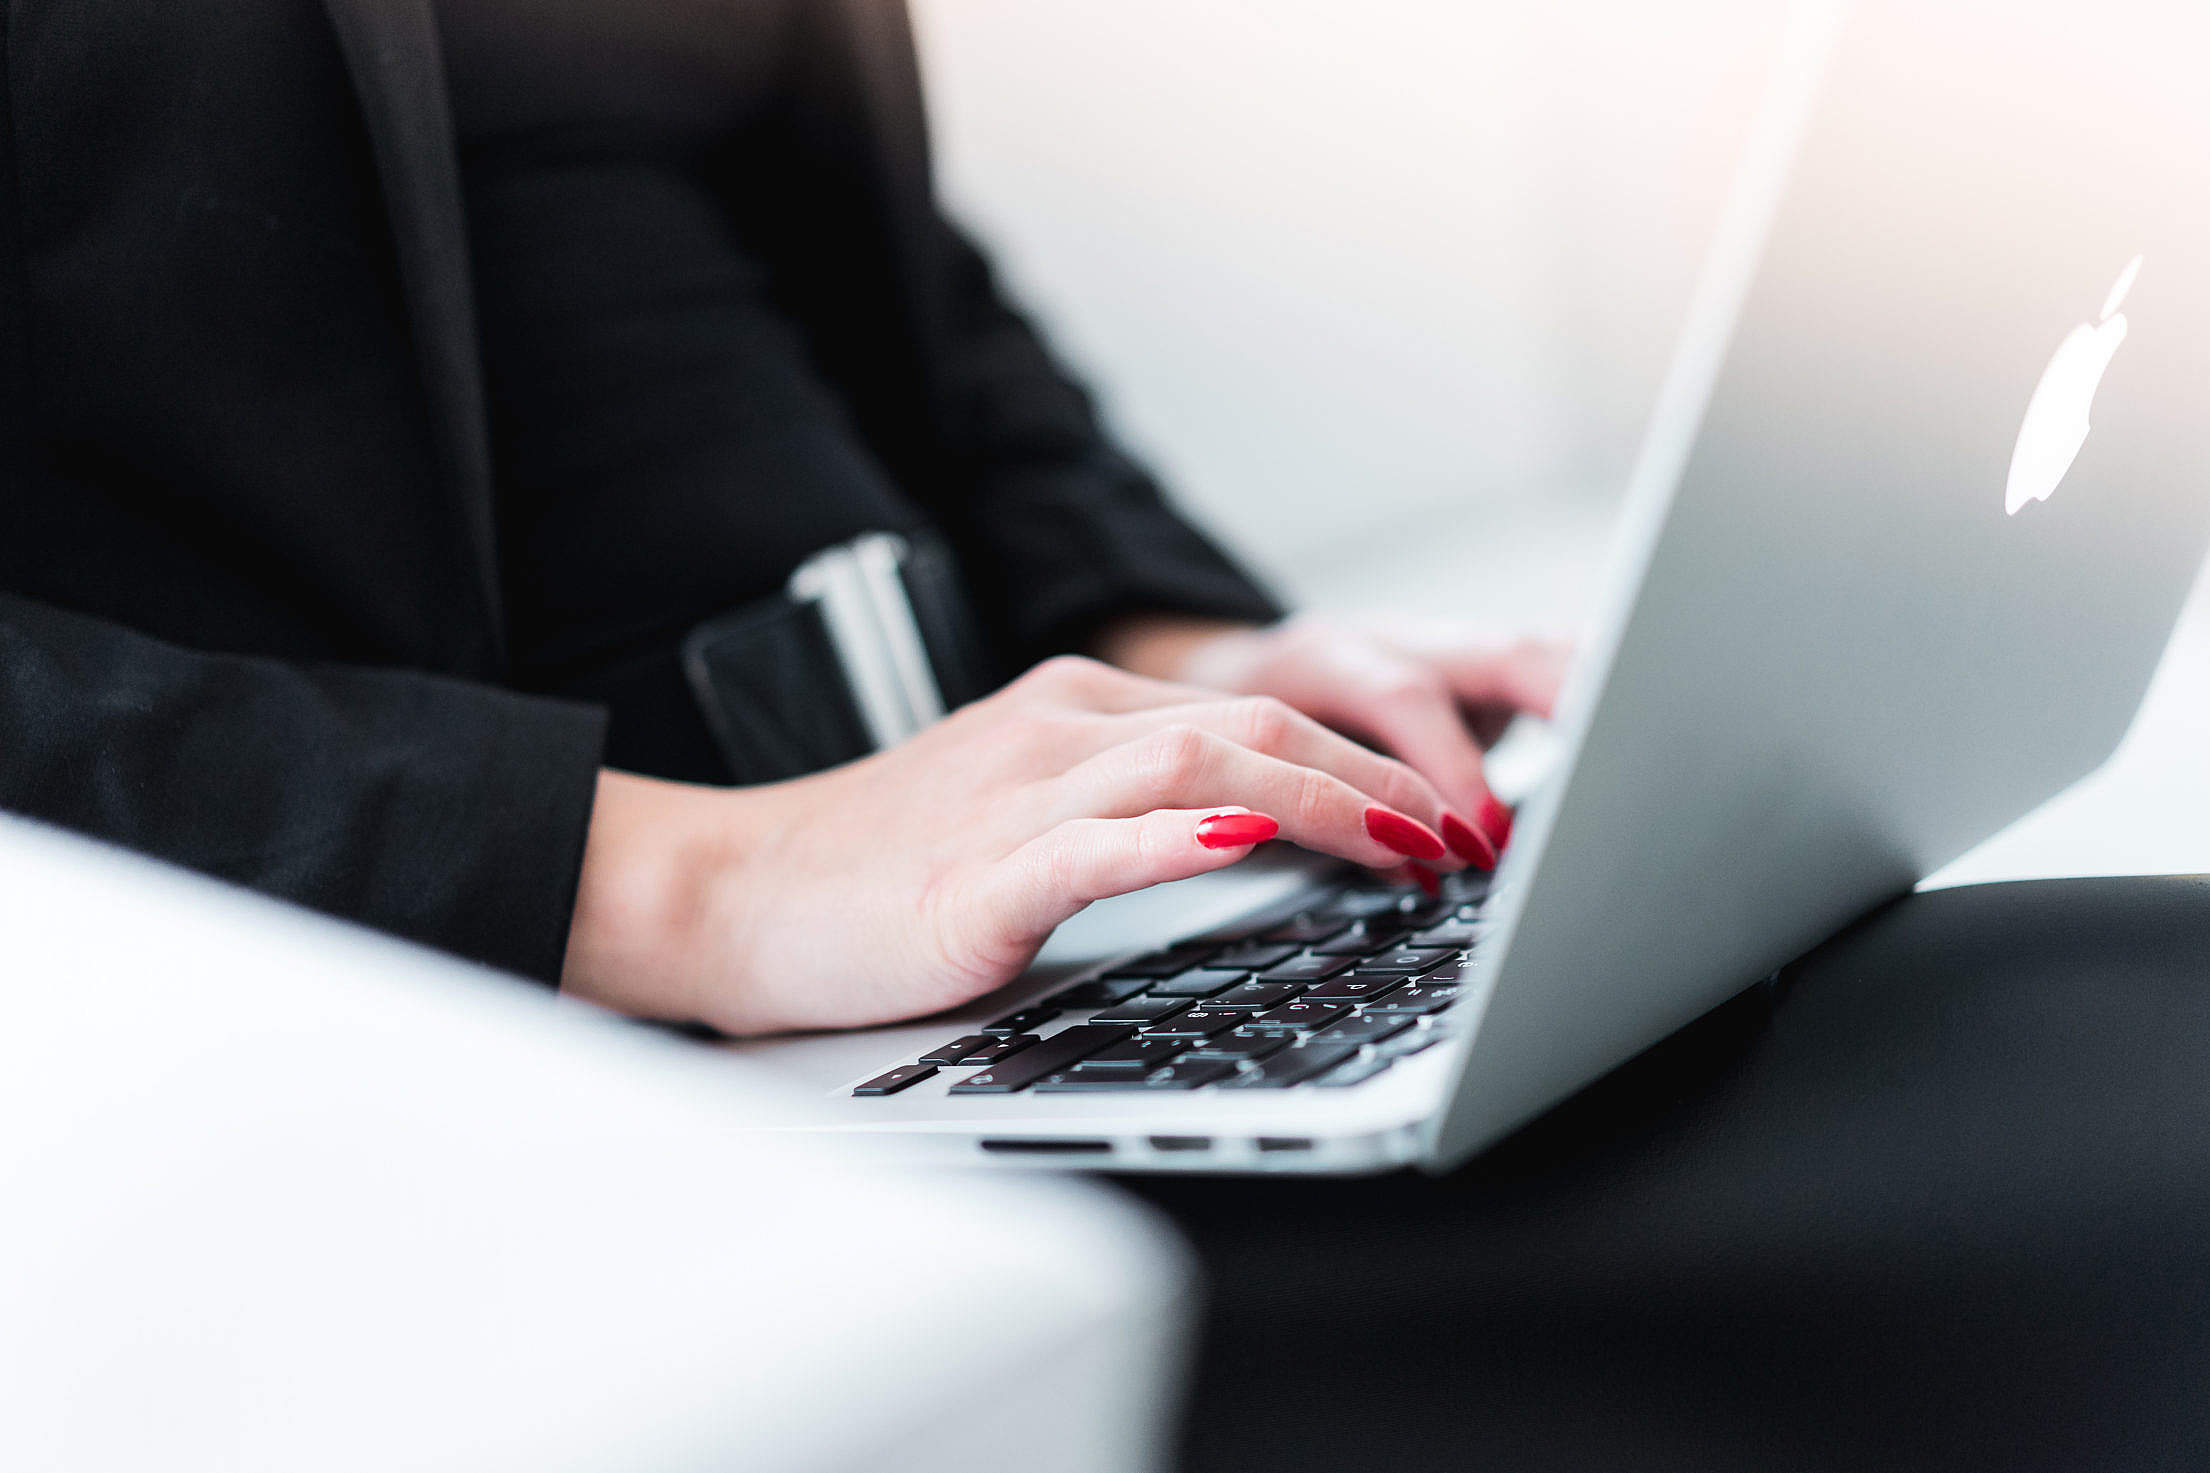 Business Woman Typing on MacBook Free Stock Photo